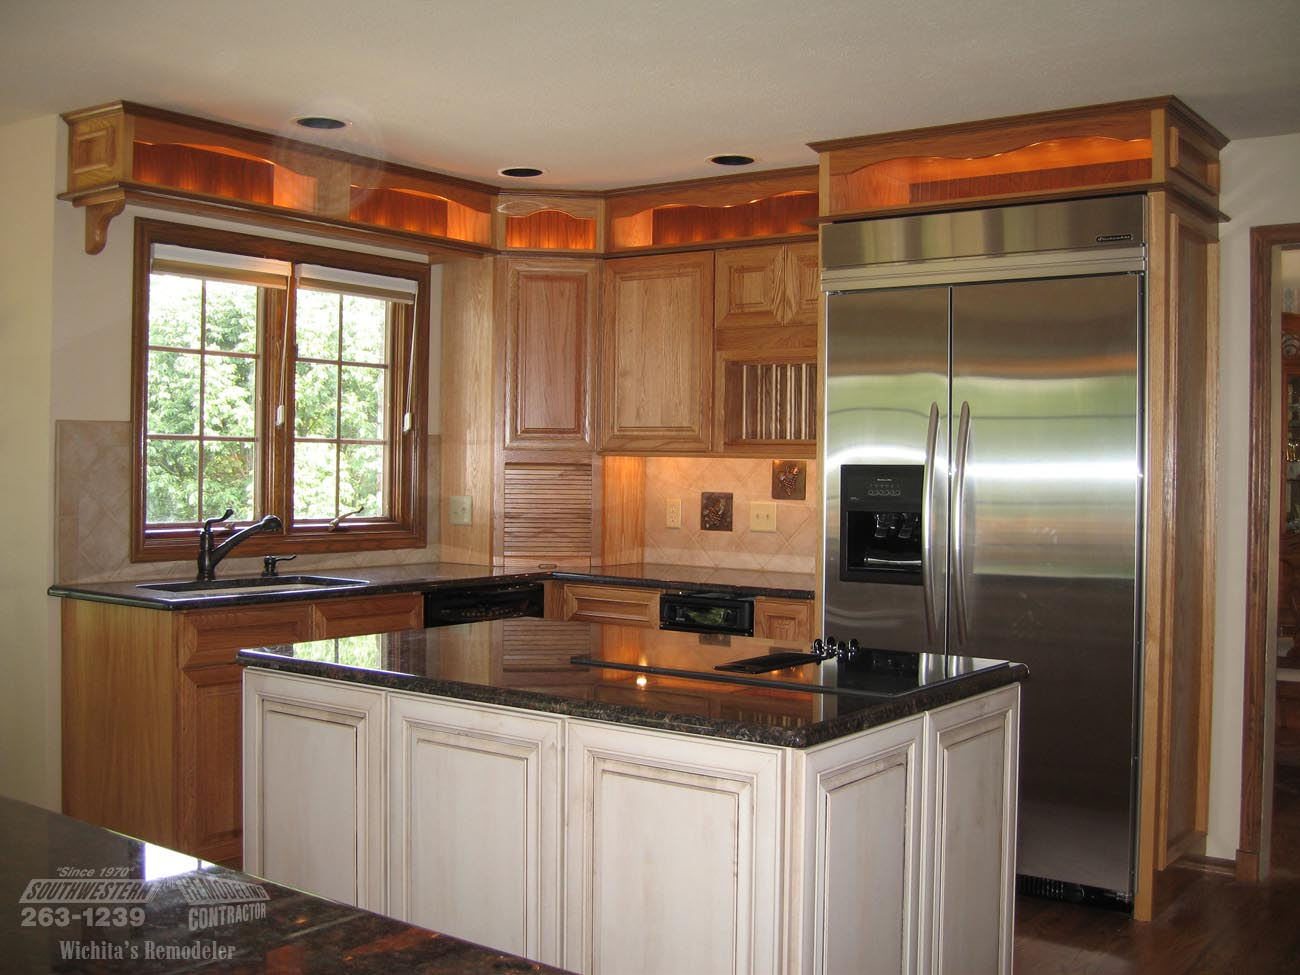 Finest Kitchens Southwestern Remodeling  Kitchen Remodeling  Wichita